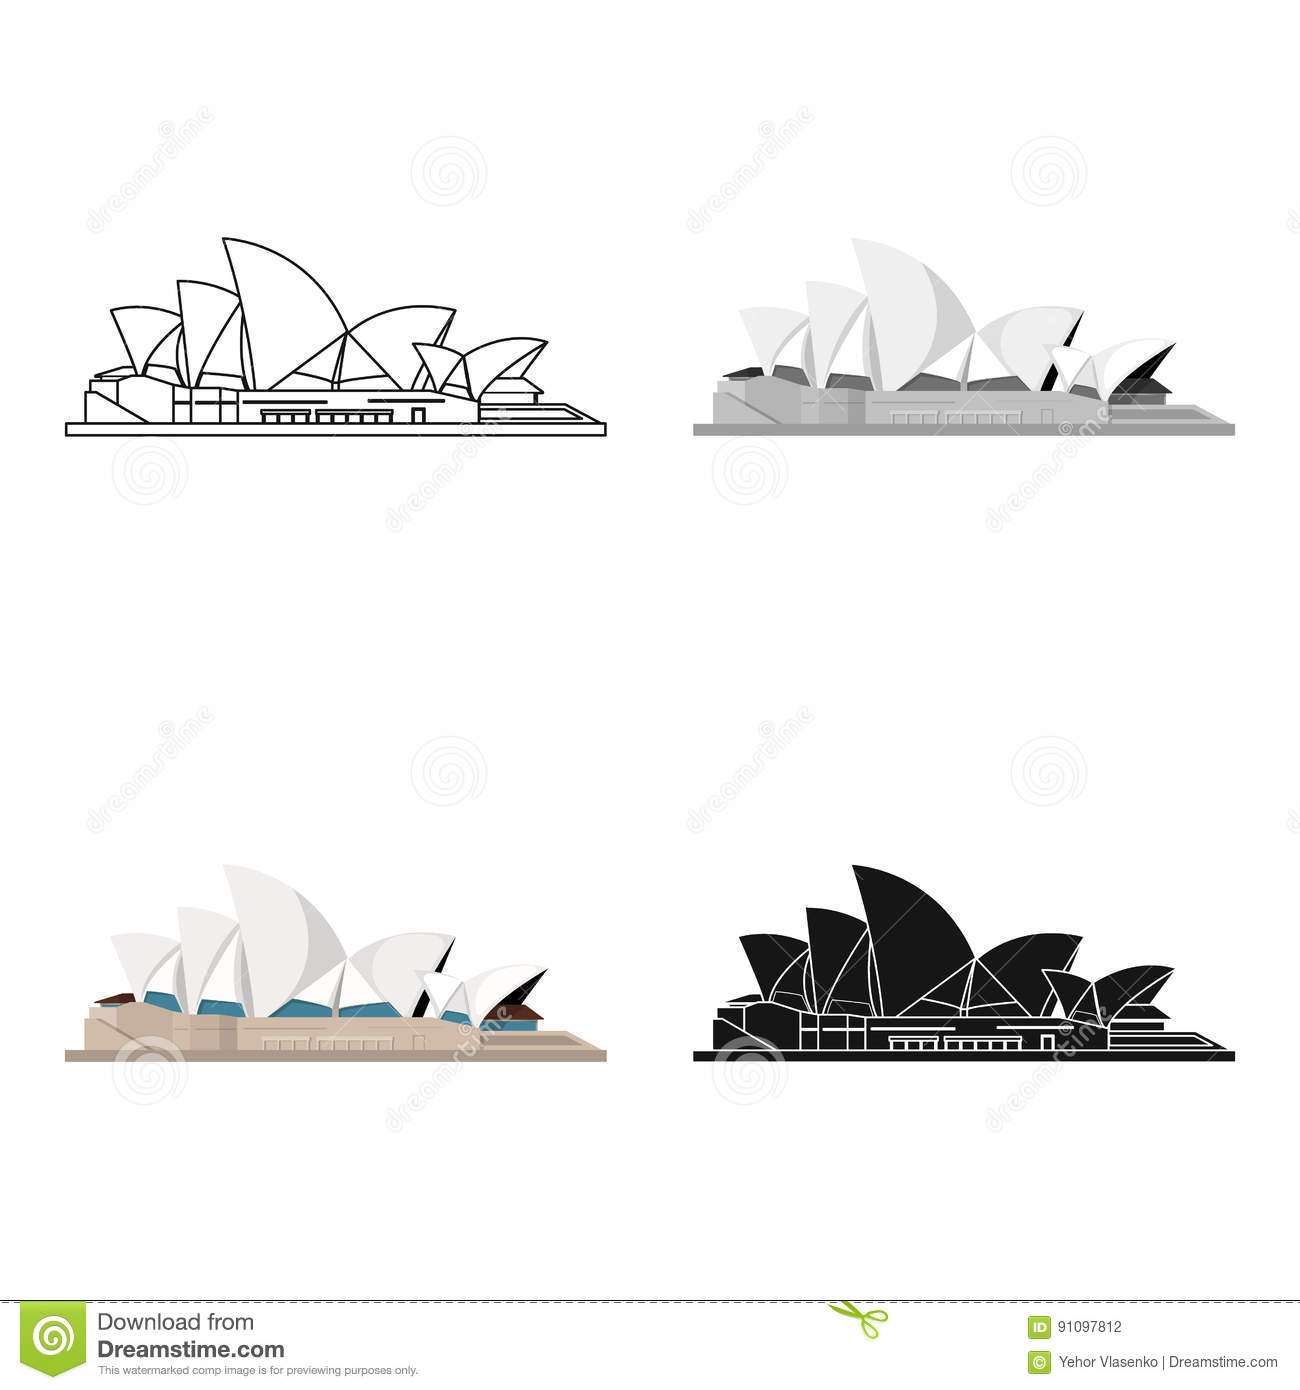 sydney opera house icon cartoon style isolated white background countries symbol stock vector illustration design 91097812 - Get Vector Images Of Sydney Opera House  Pictures